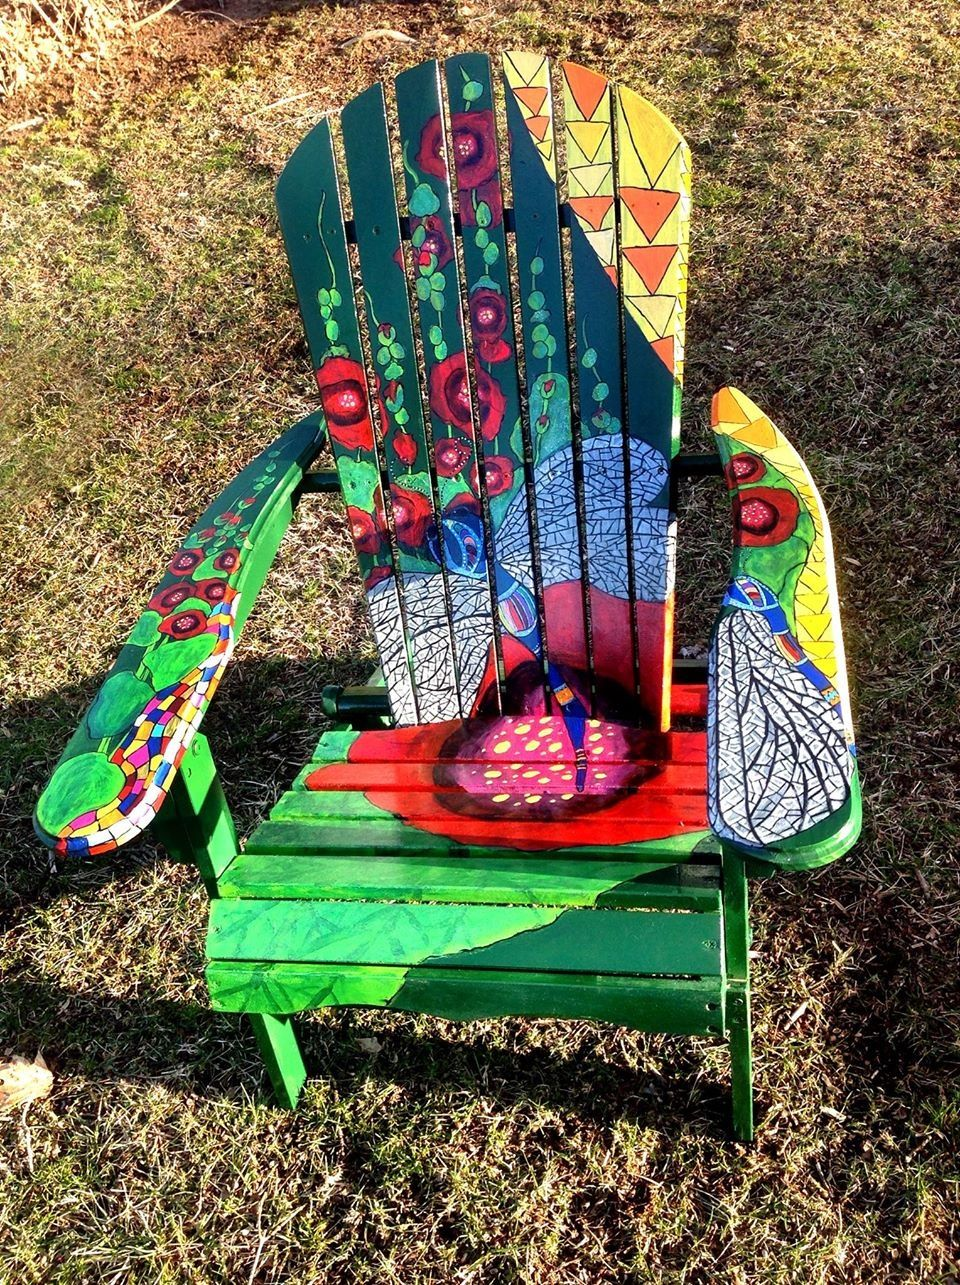 Painted chairs pinterest - Dragonfly And Hollyhock Painted Adirondack Chair